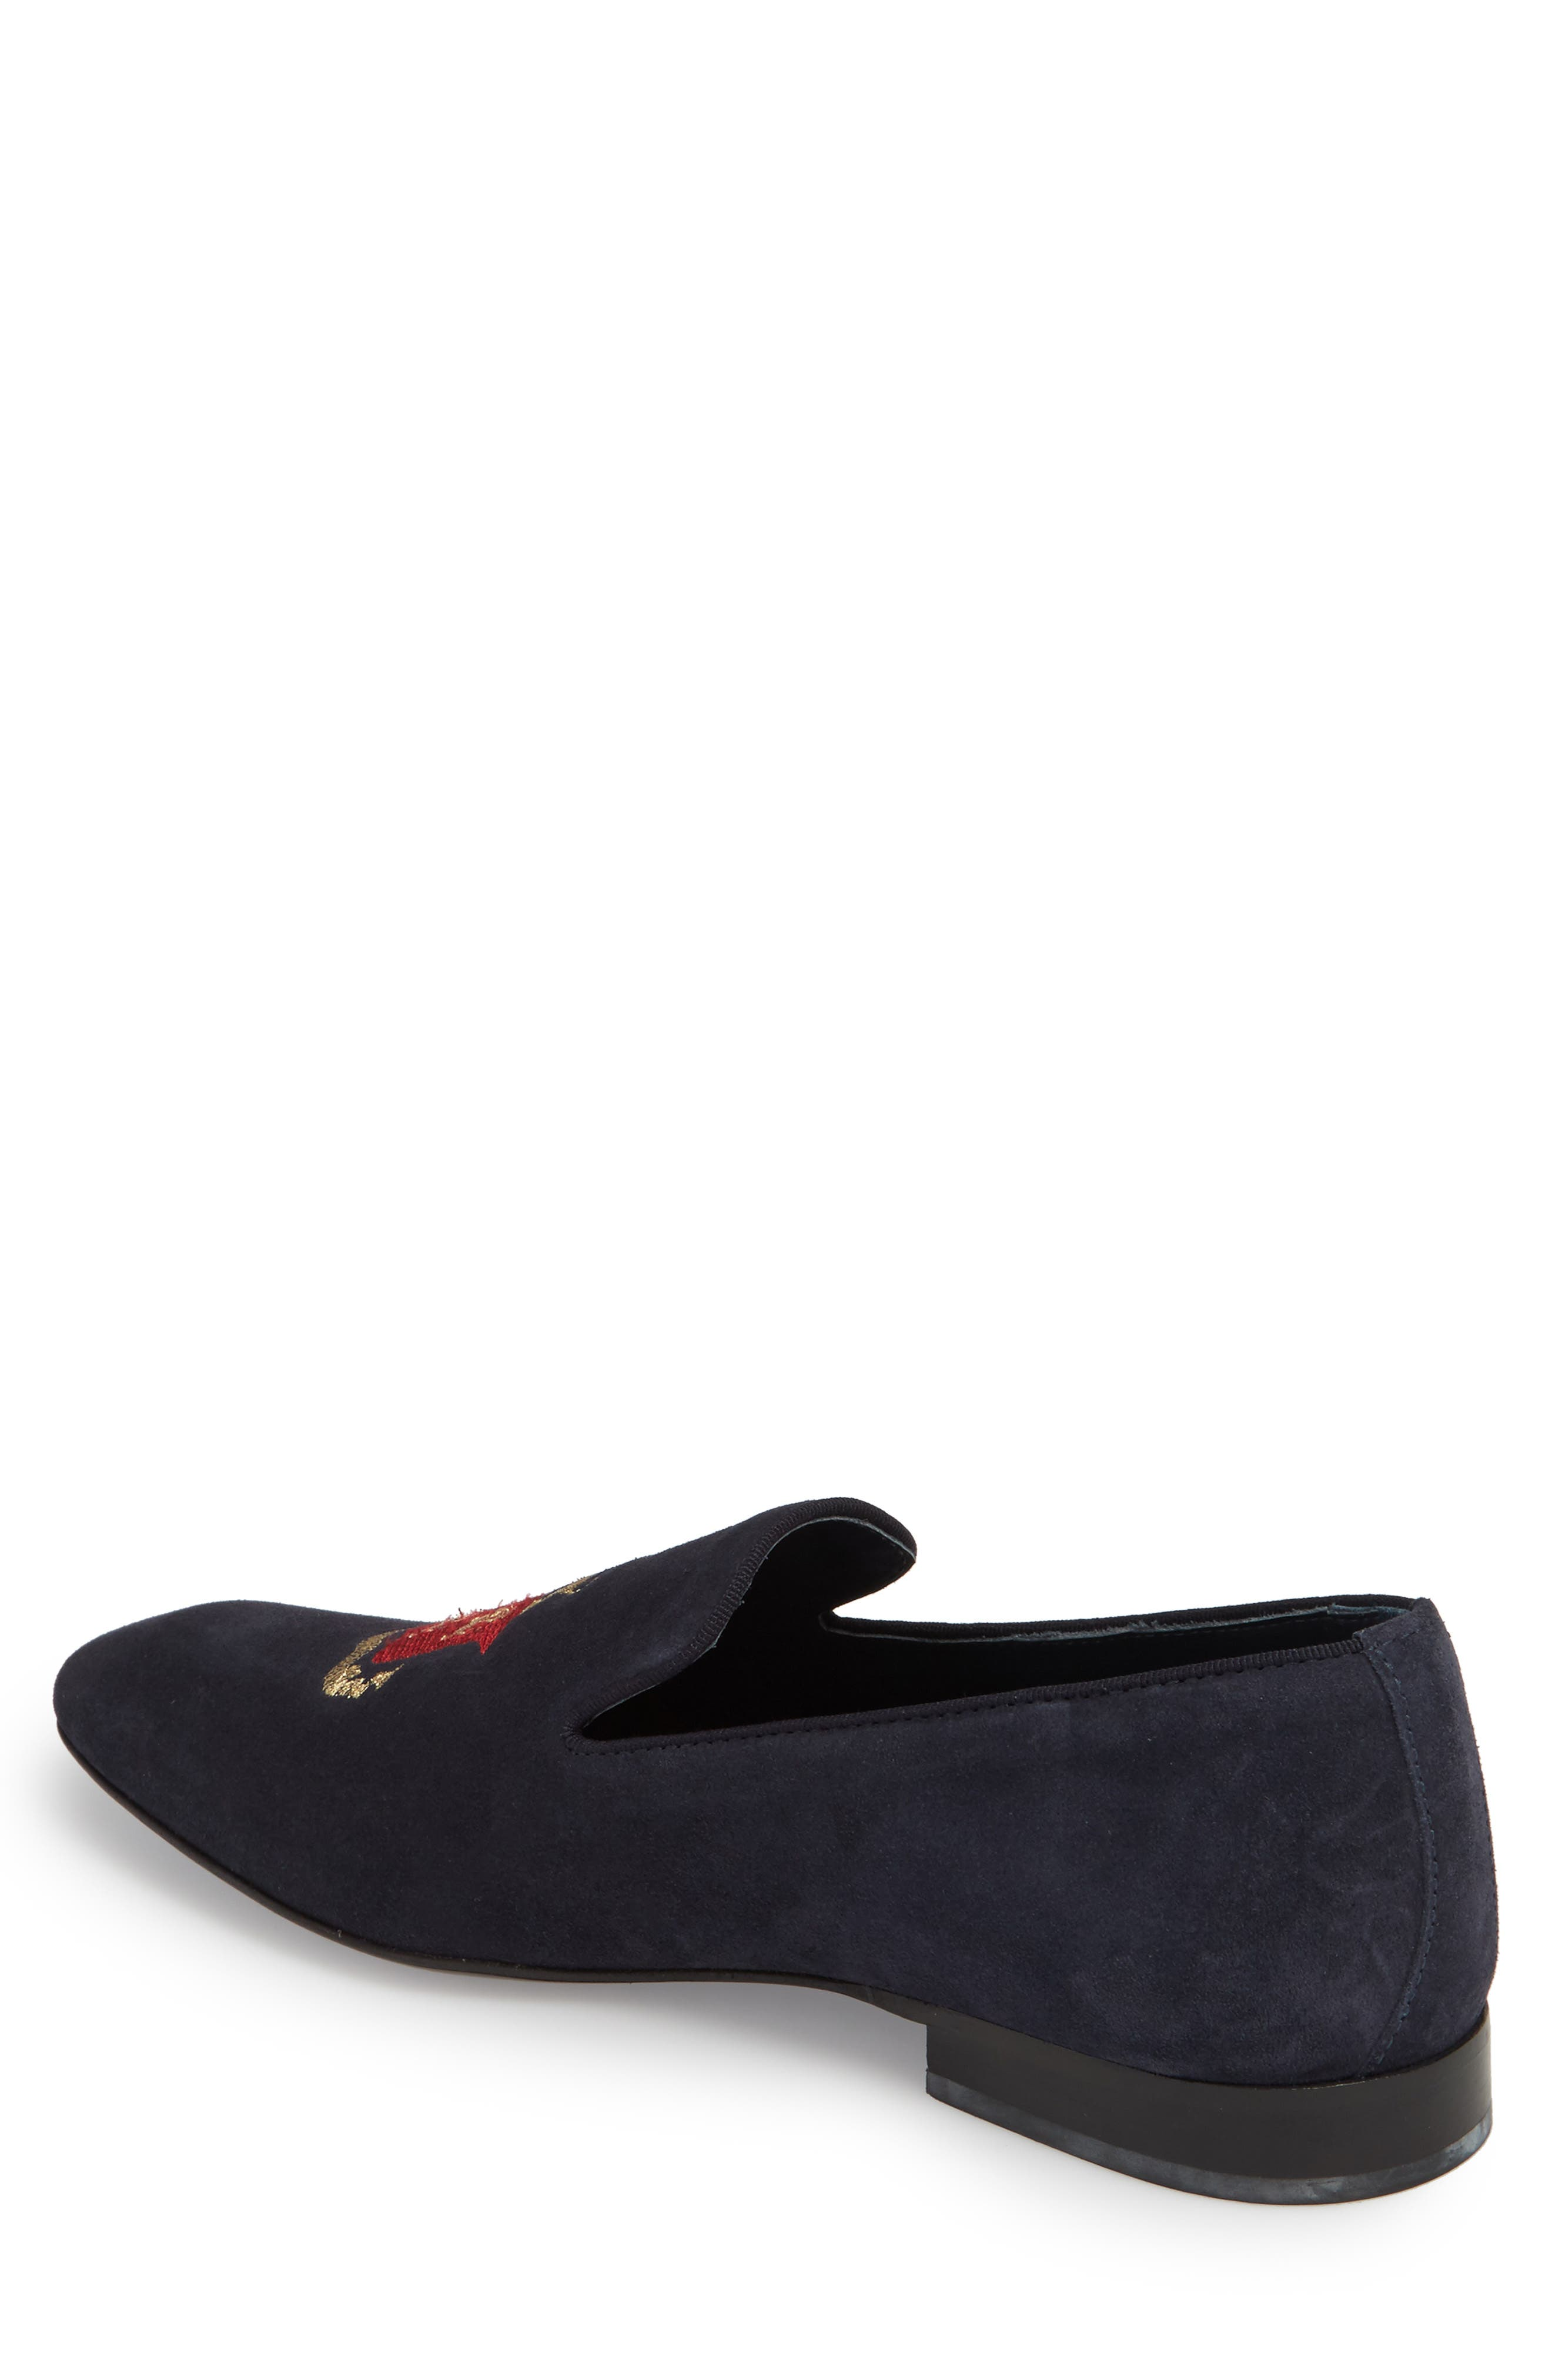 Altos Embroidered Venetian Loafer,                             Alternate thumbnail 2, color,                             NAVY